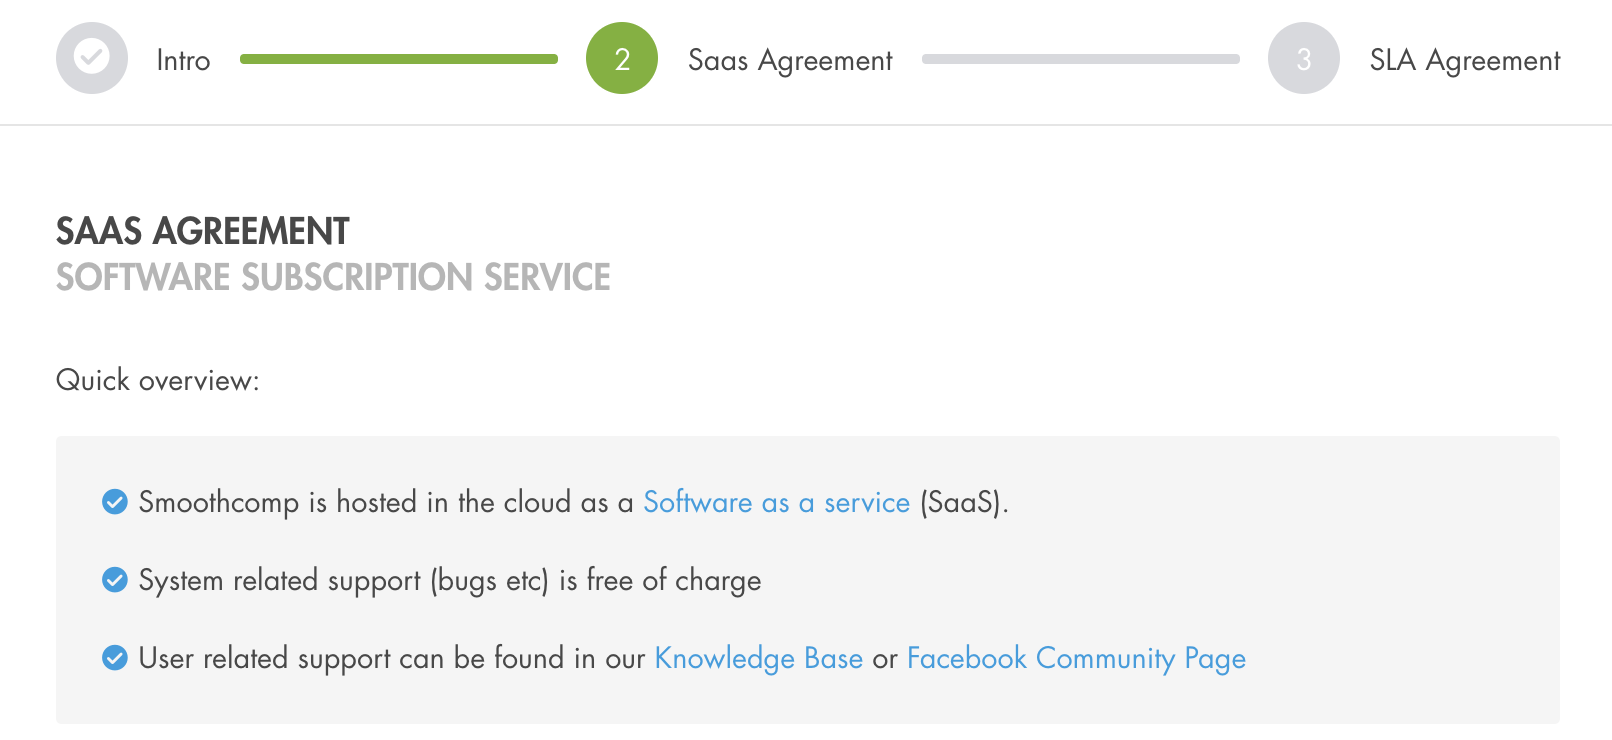 More Information About Our Saas And Sla Agreements Smoothcomp